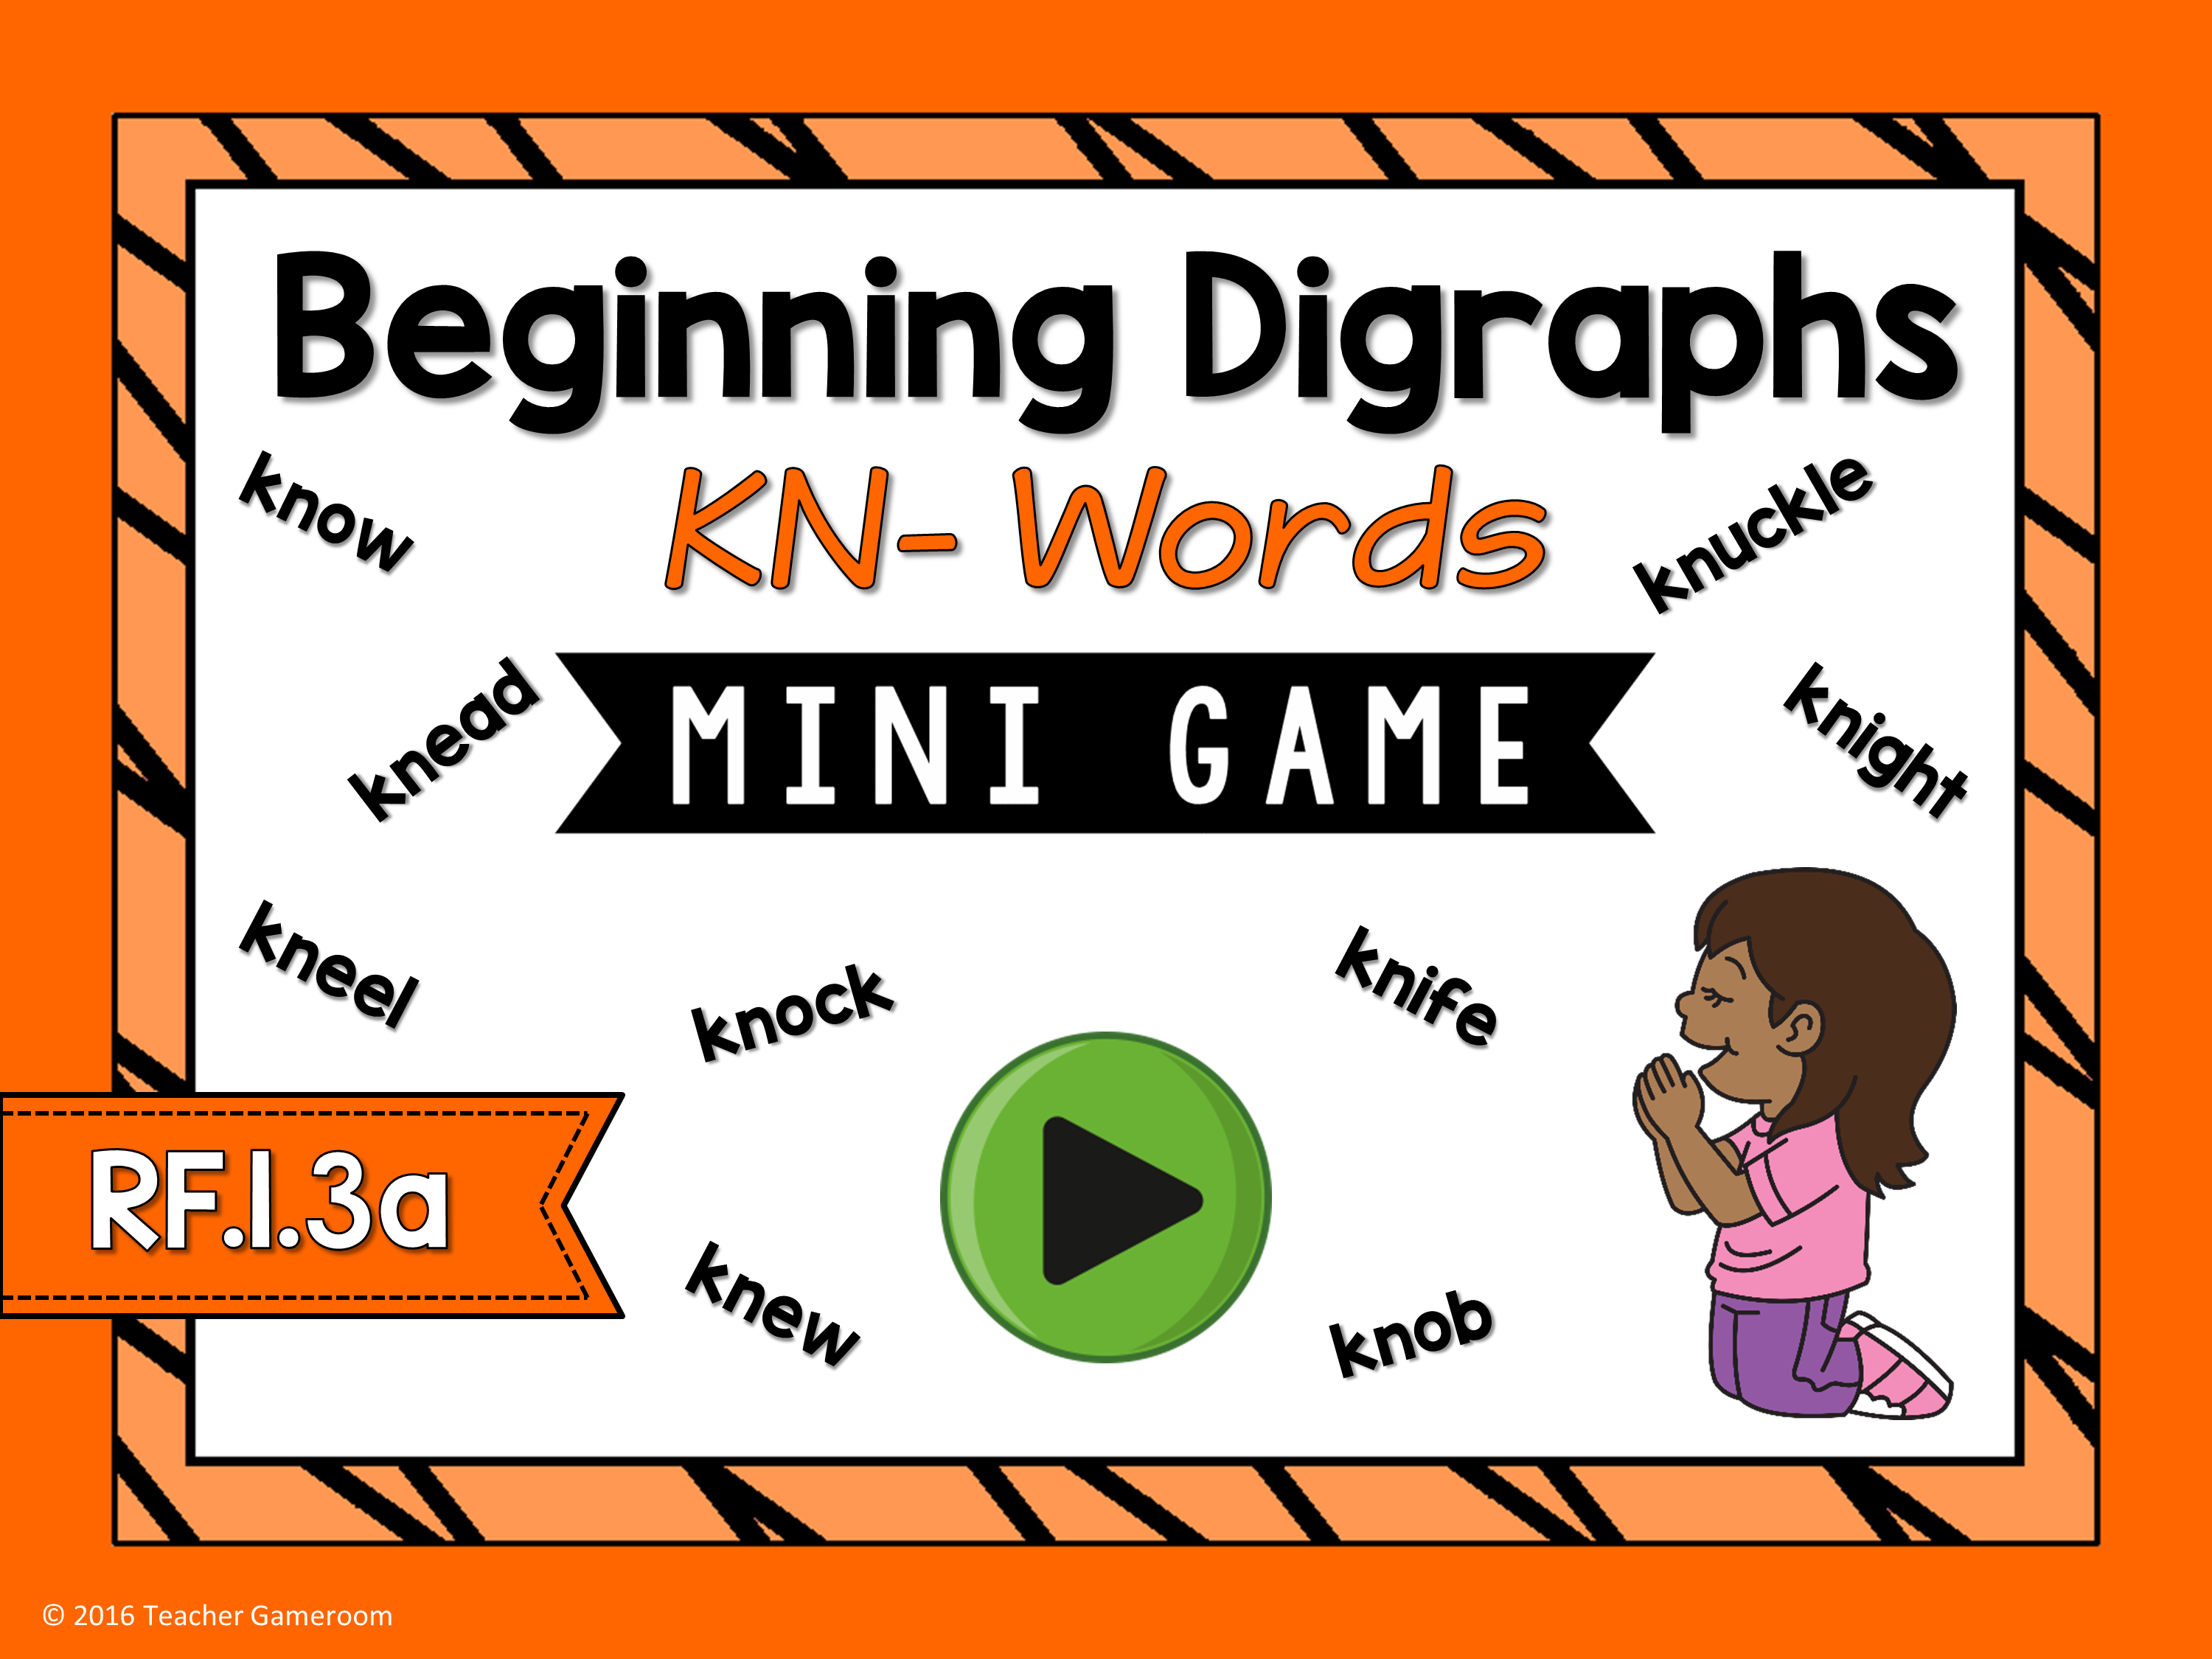 Beginning Digraphs Kn Words Mini Game